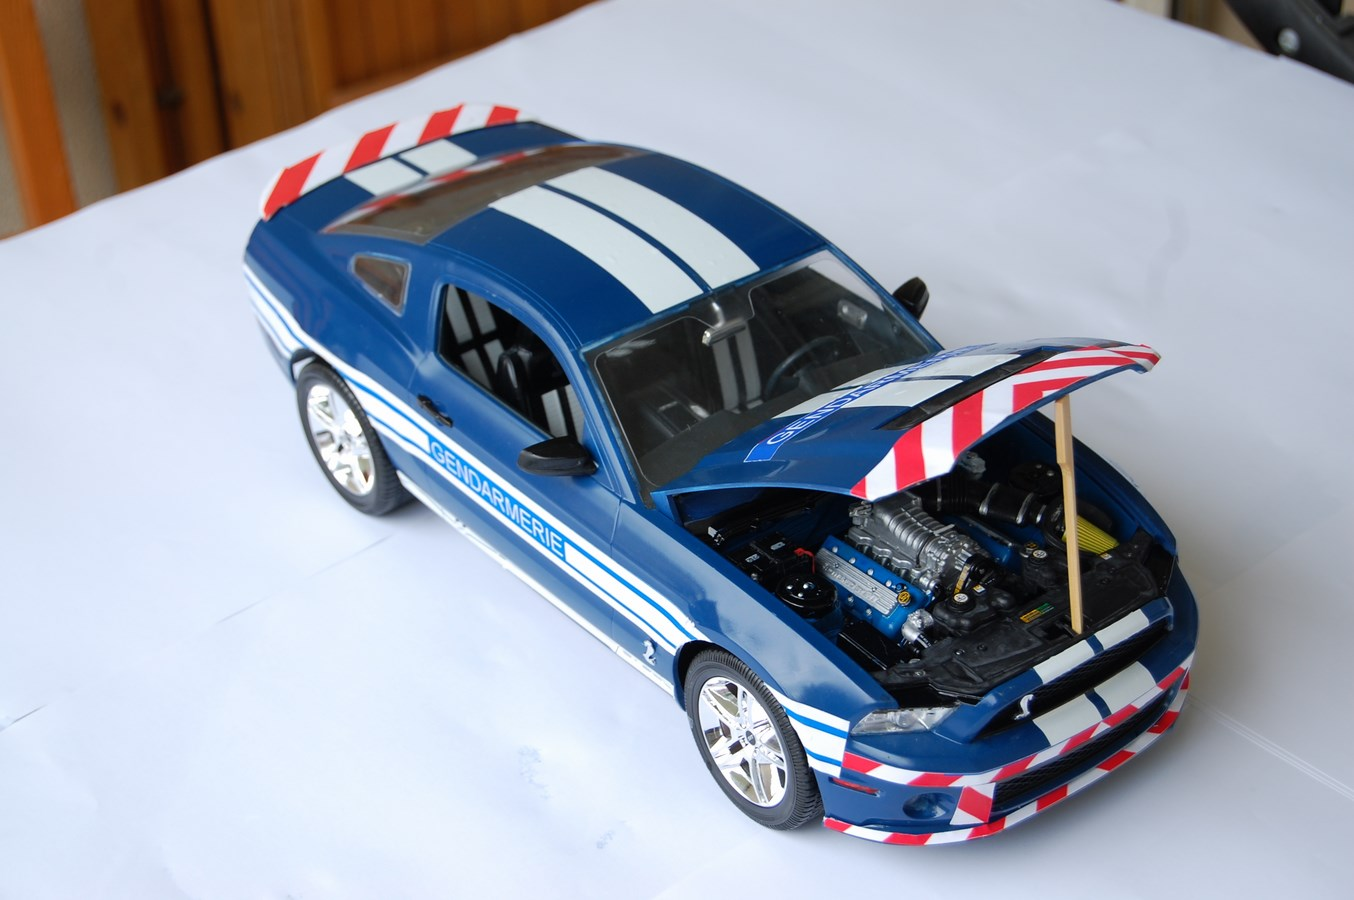 Shelby GT 500 version imaginaire Gendarmerie - Page 2 385481Mustang47Copier